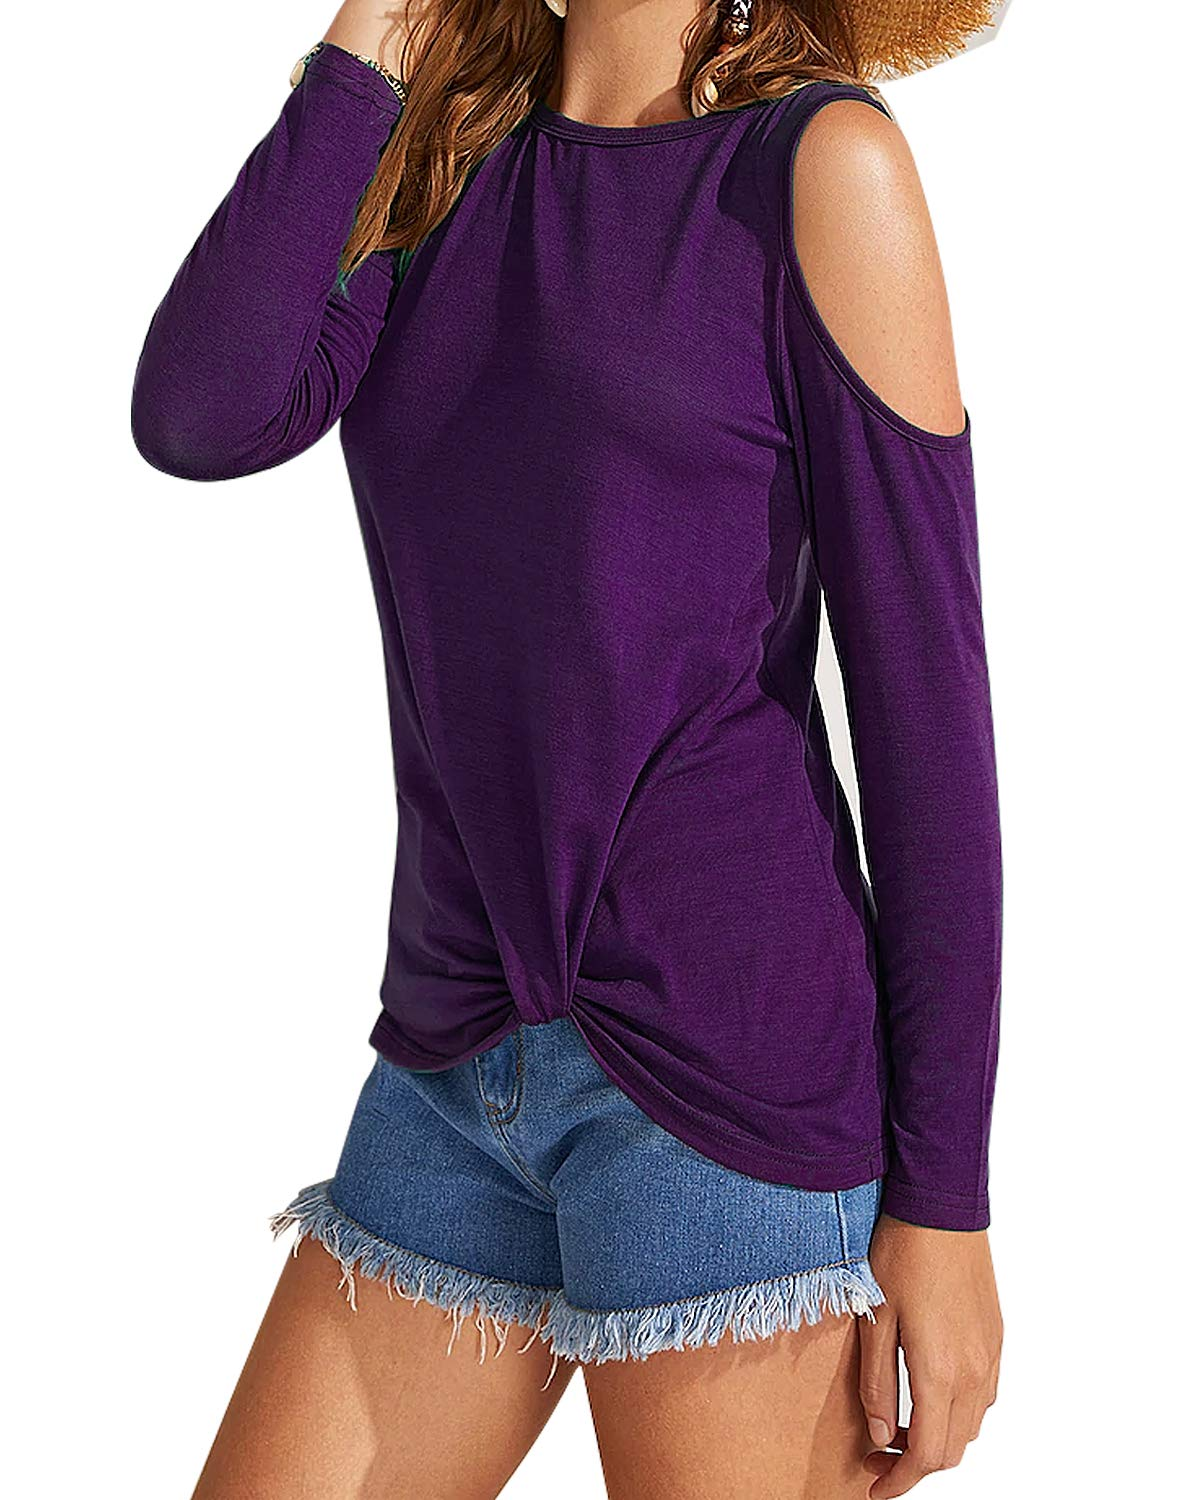 Eanklosco Women's Long Sleeve Cold Shoulder Cut Out T Shirts Casual Knot Tunic Tops (Purple, L)